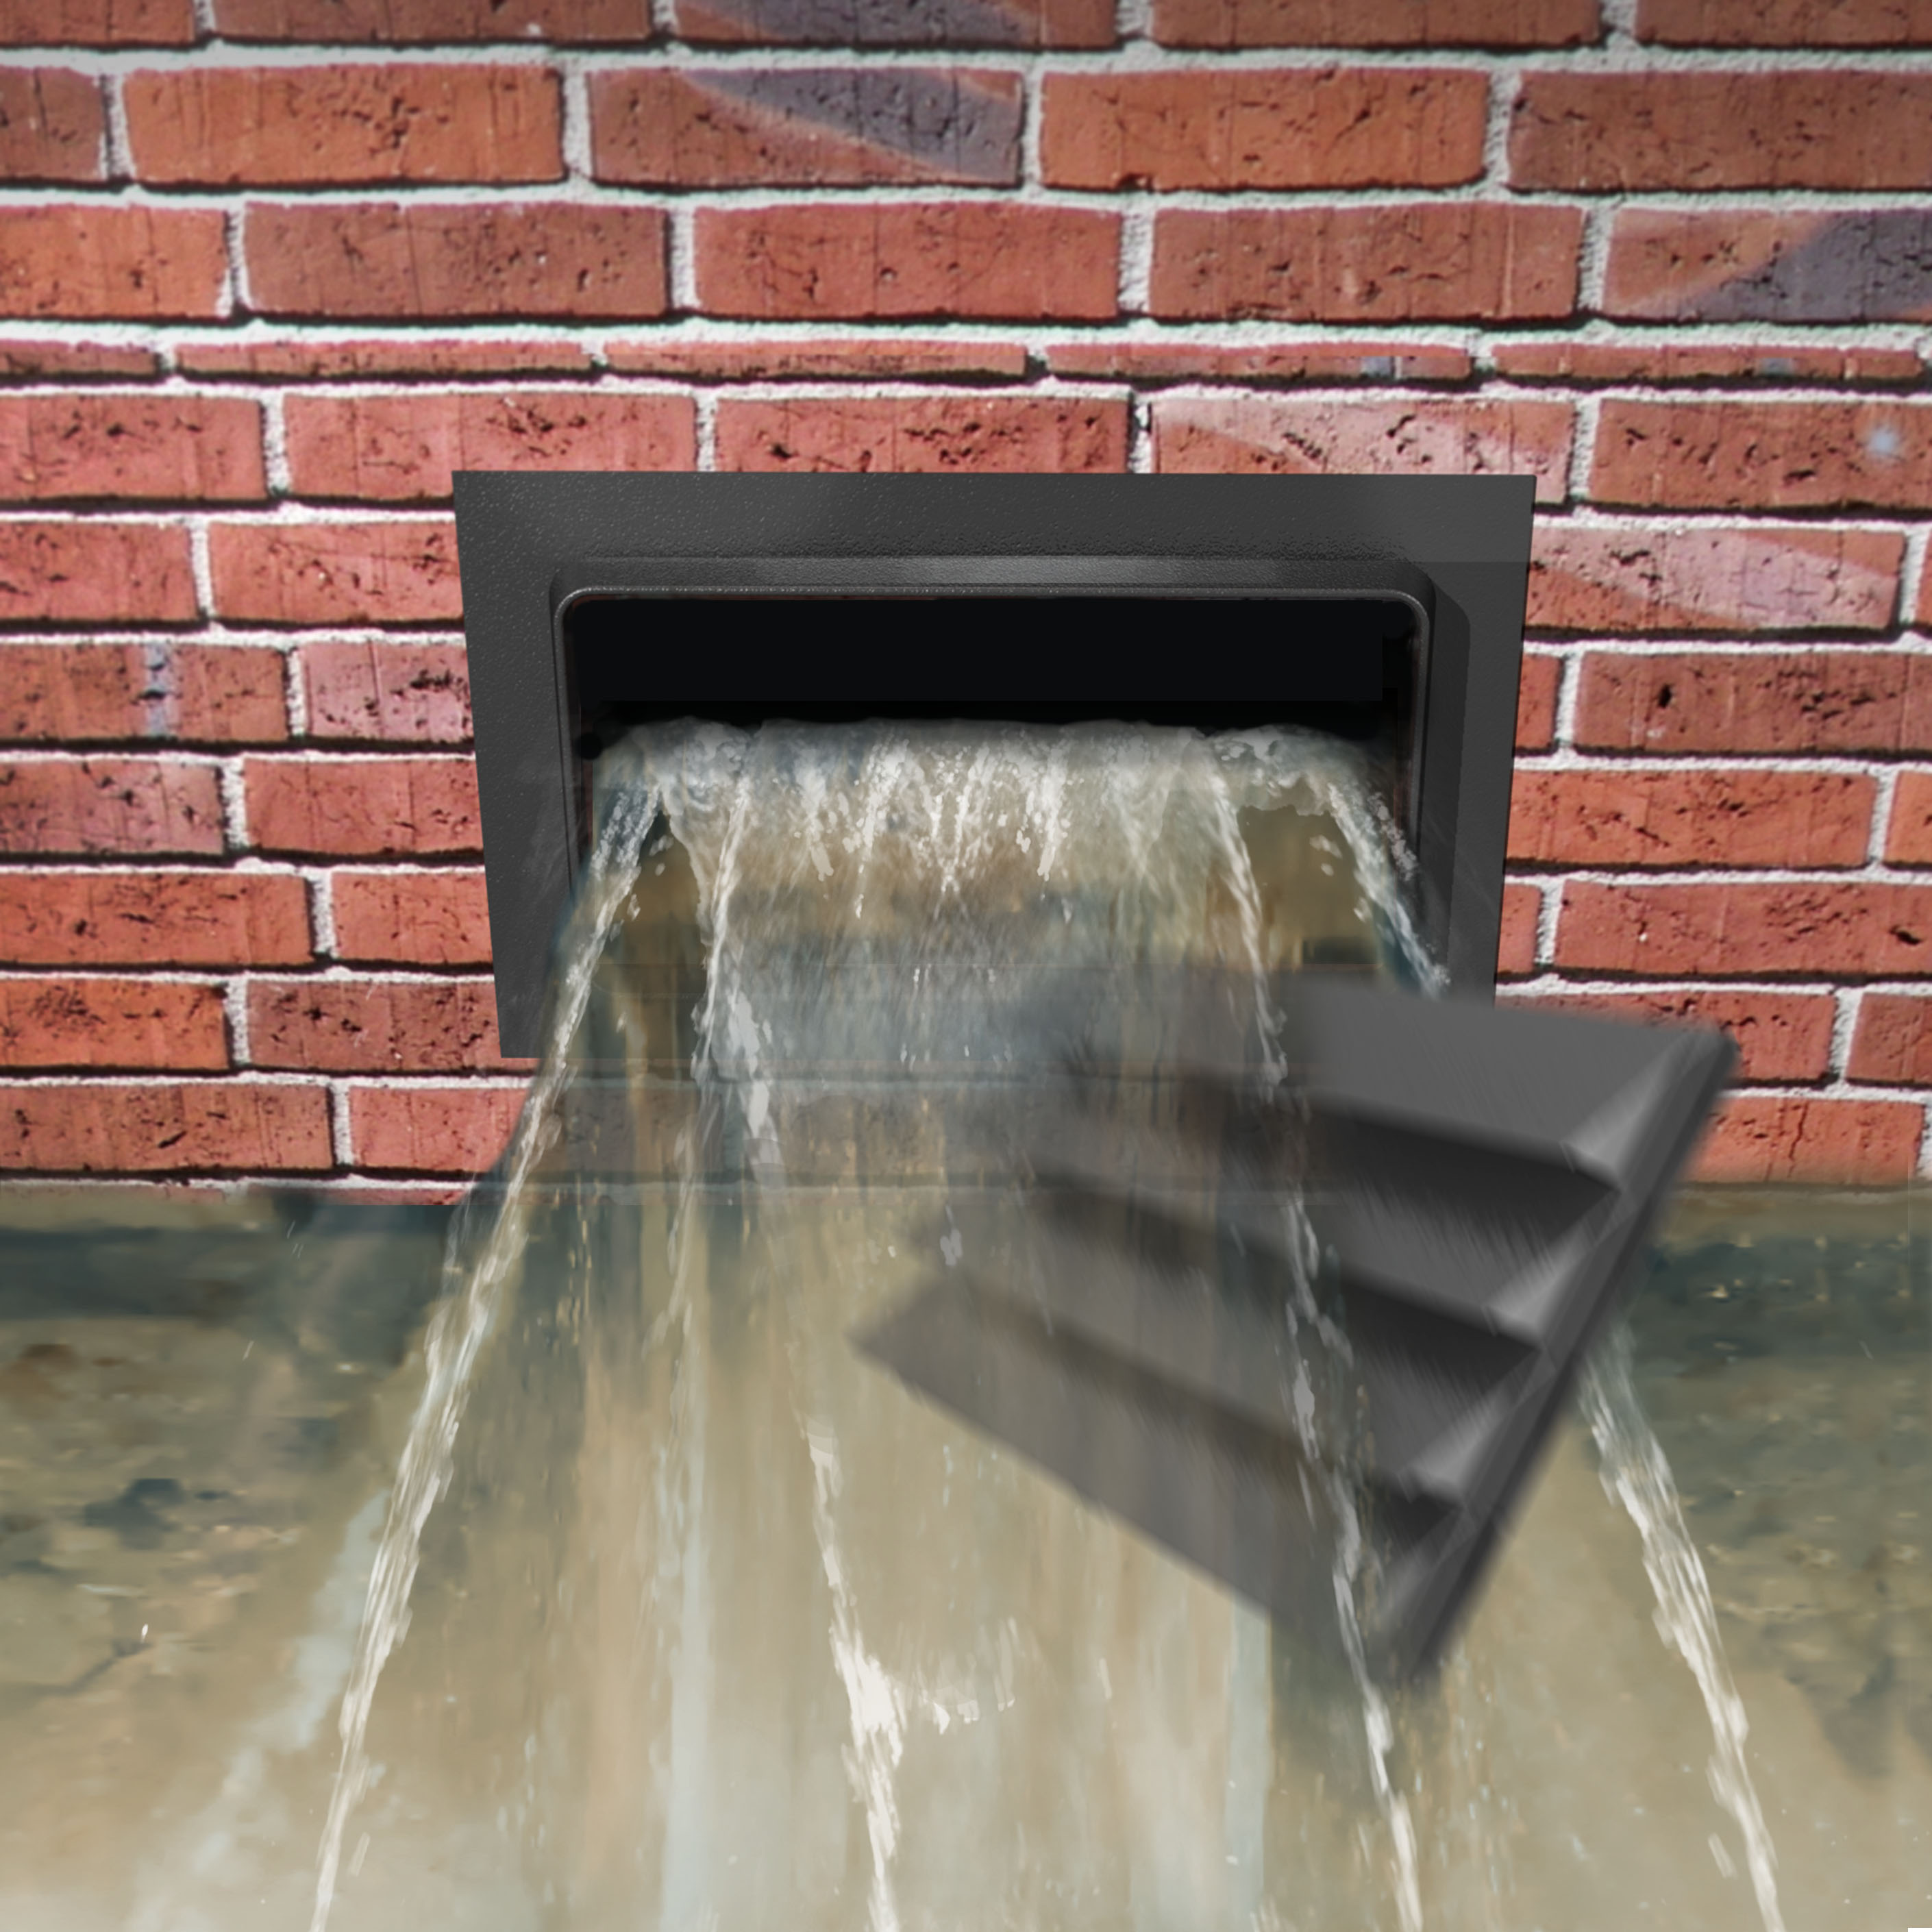 Flood Vents How To Use Flood Vents For Structural Protection From Flooding Flood Venting In Foundations And Enclosures Below Design Flood Elevation Wet Flood Proofing Measures